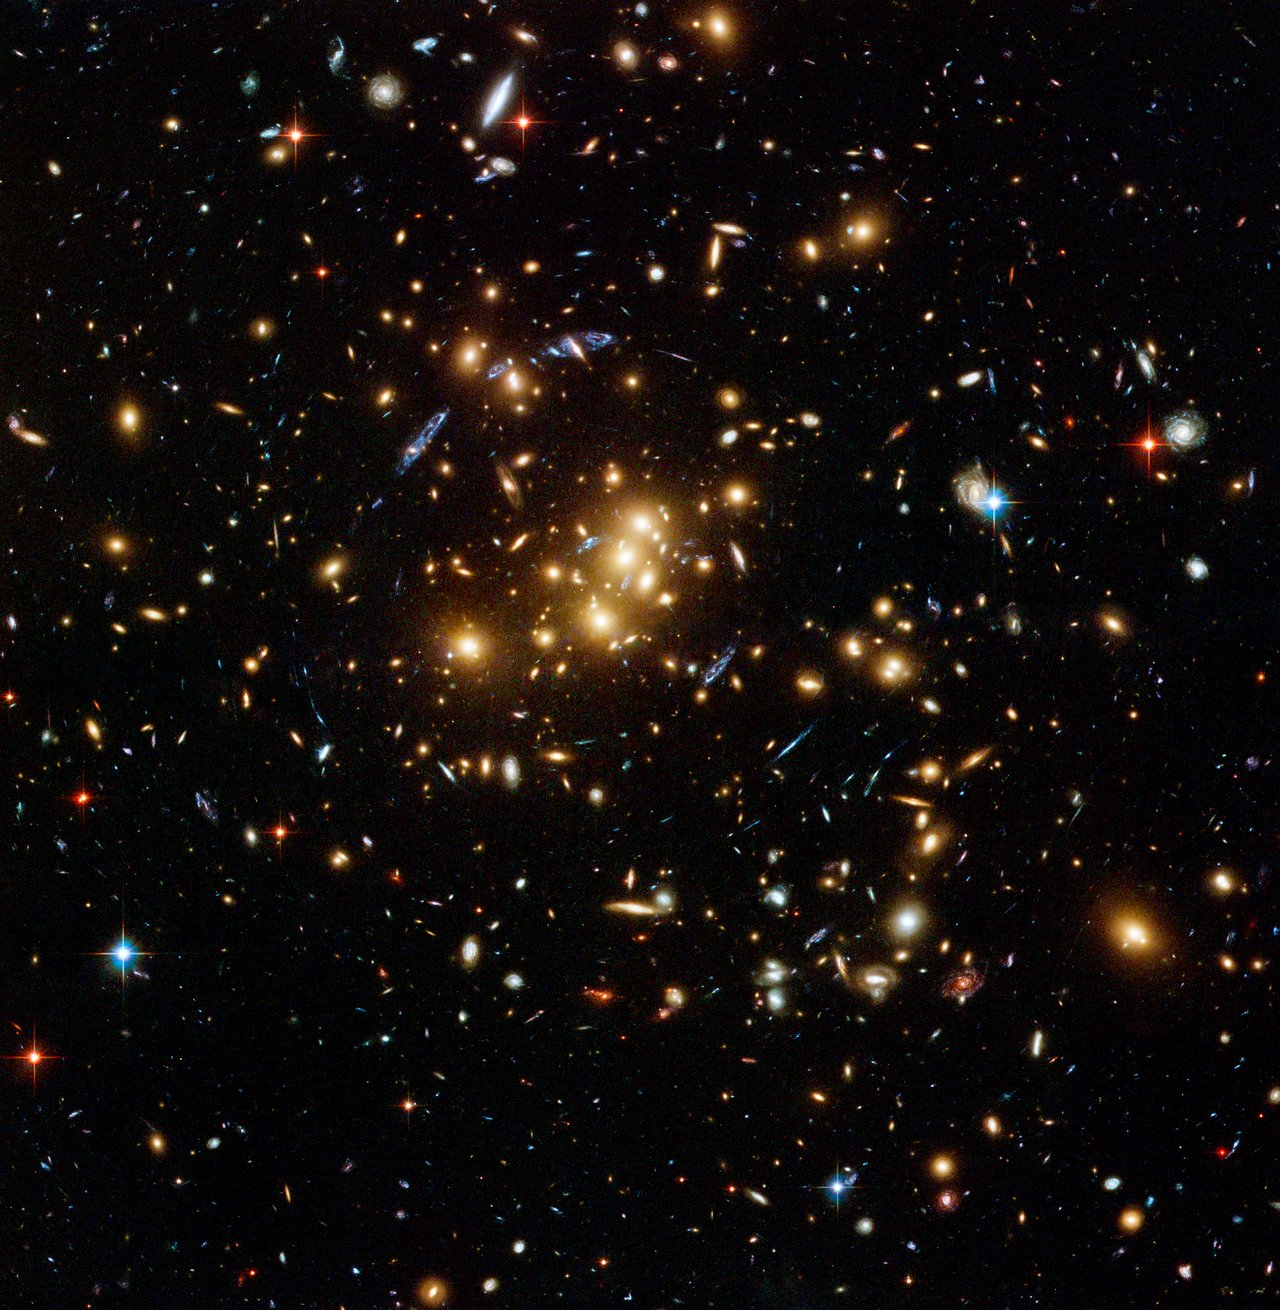 galaxies hubble telescope discovers-#19